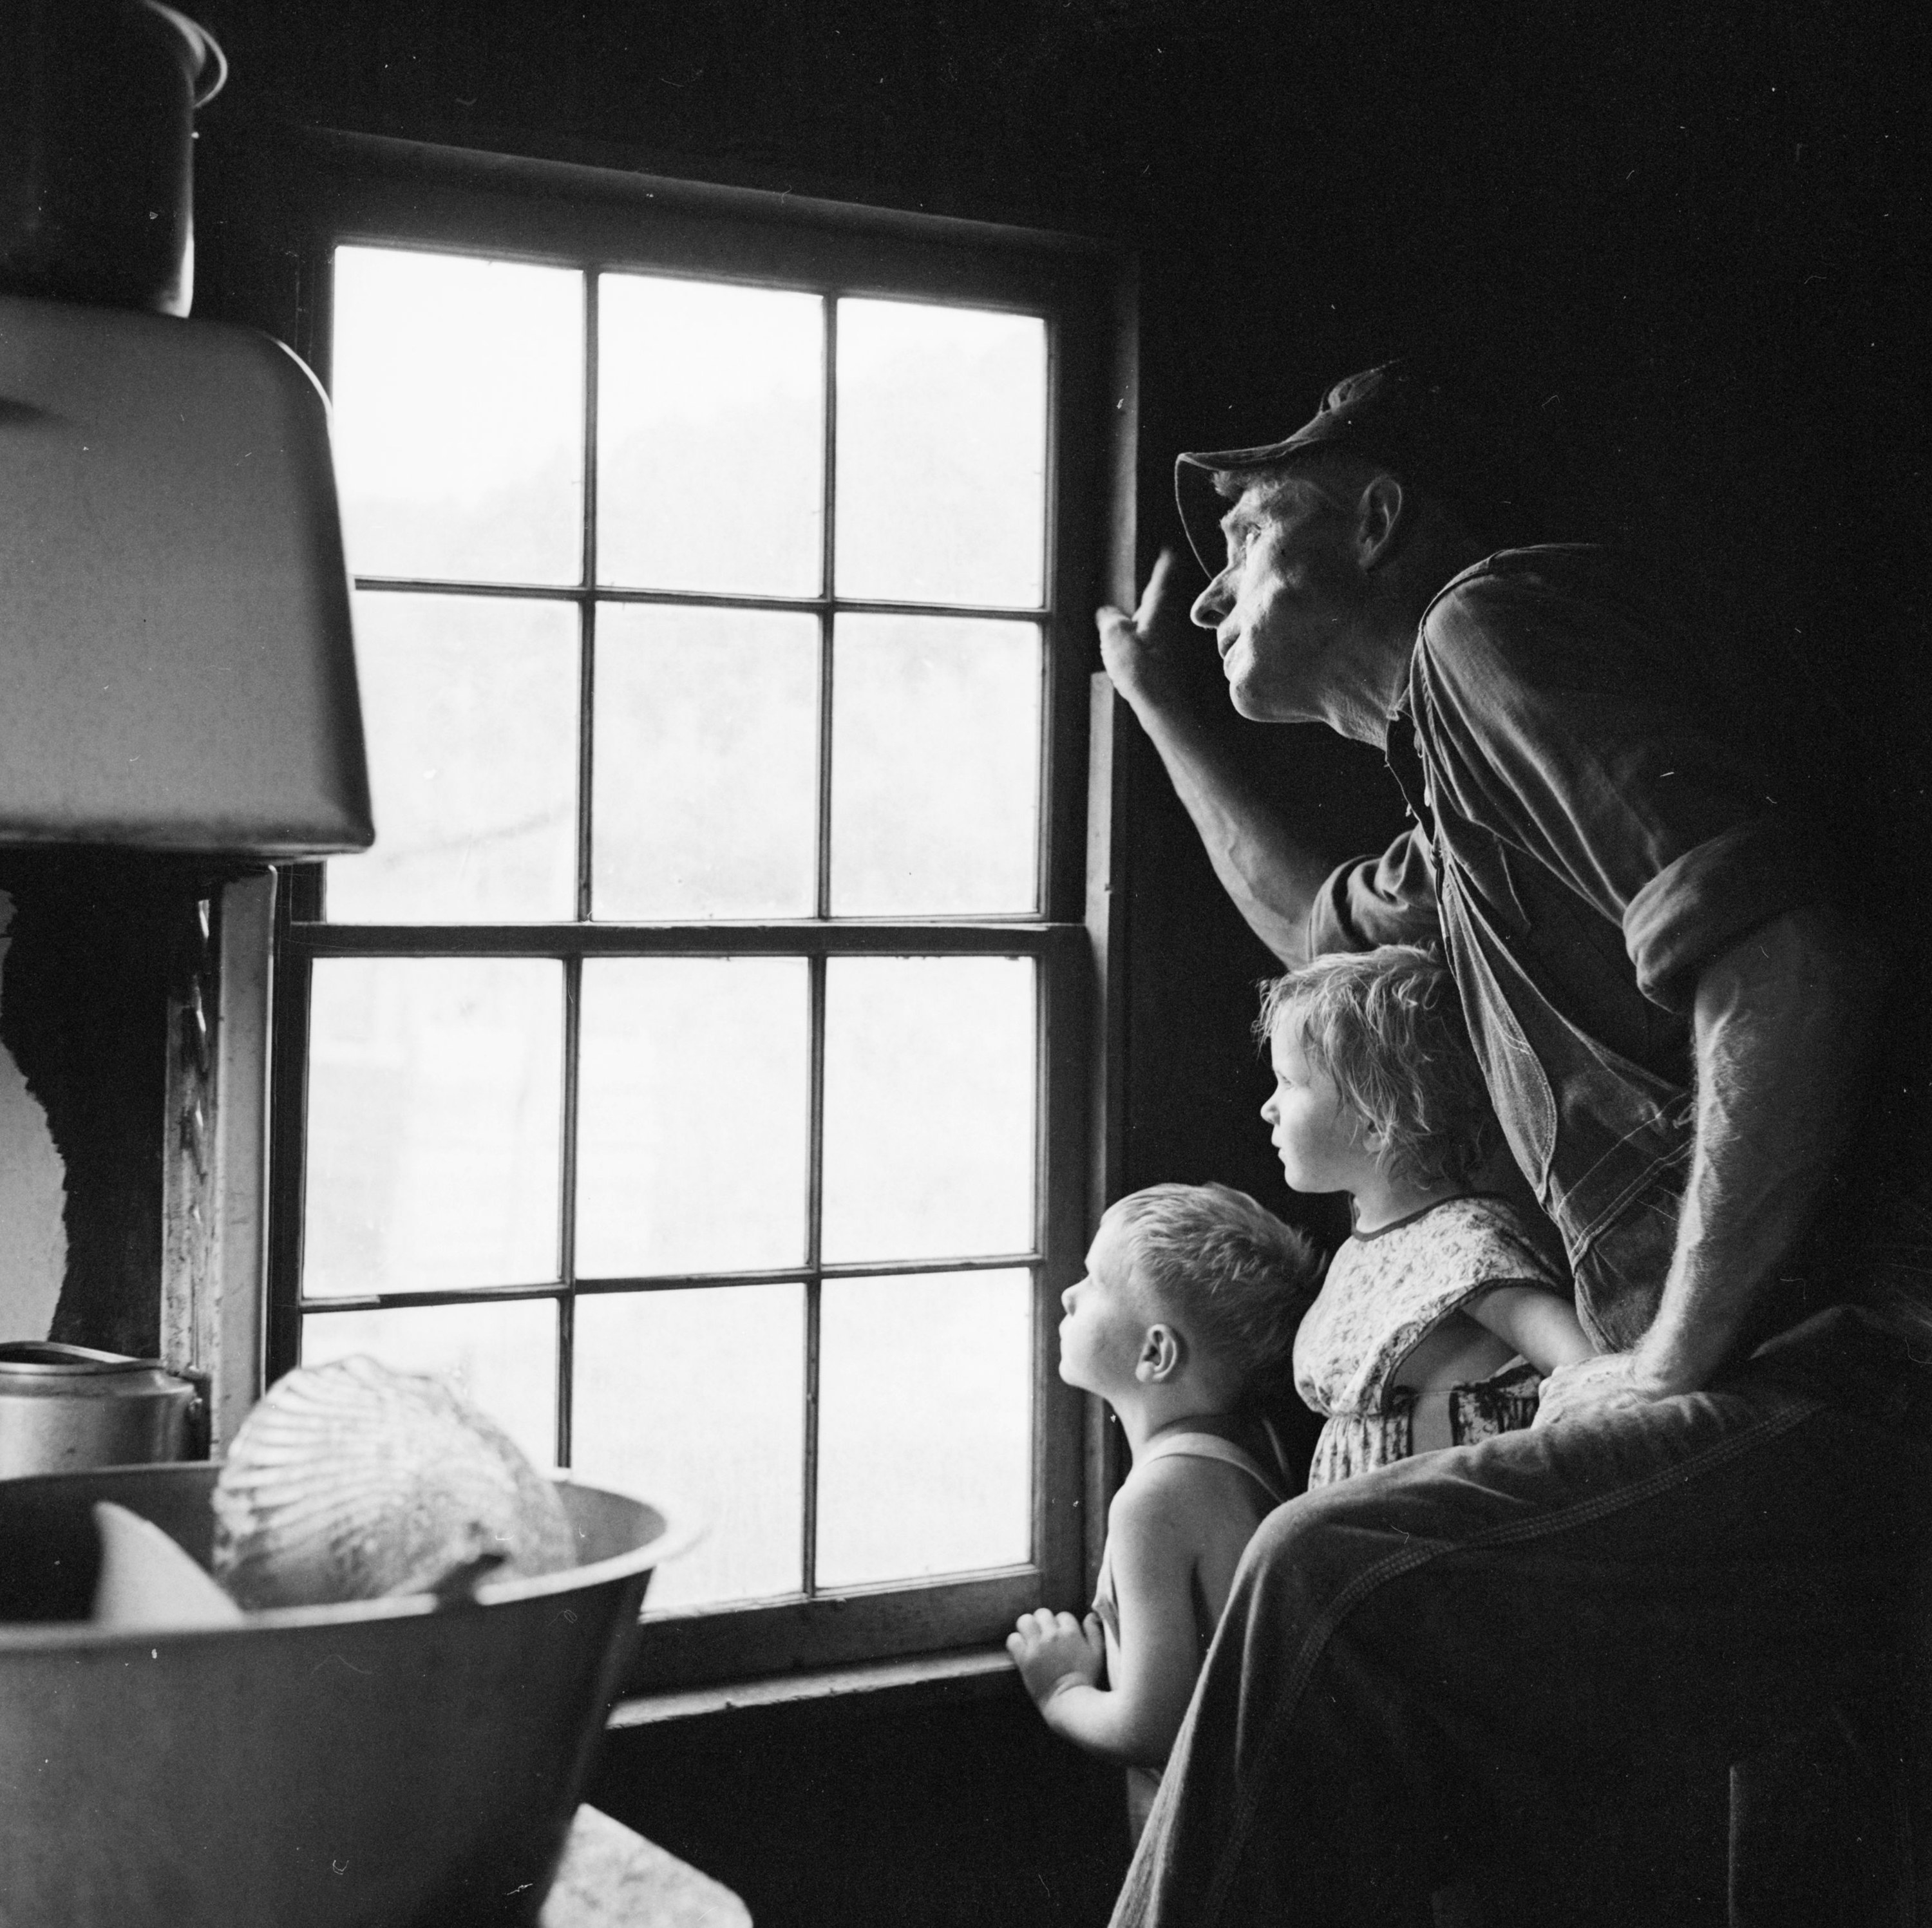 A man looks out a window with two small children